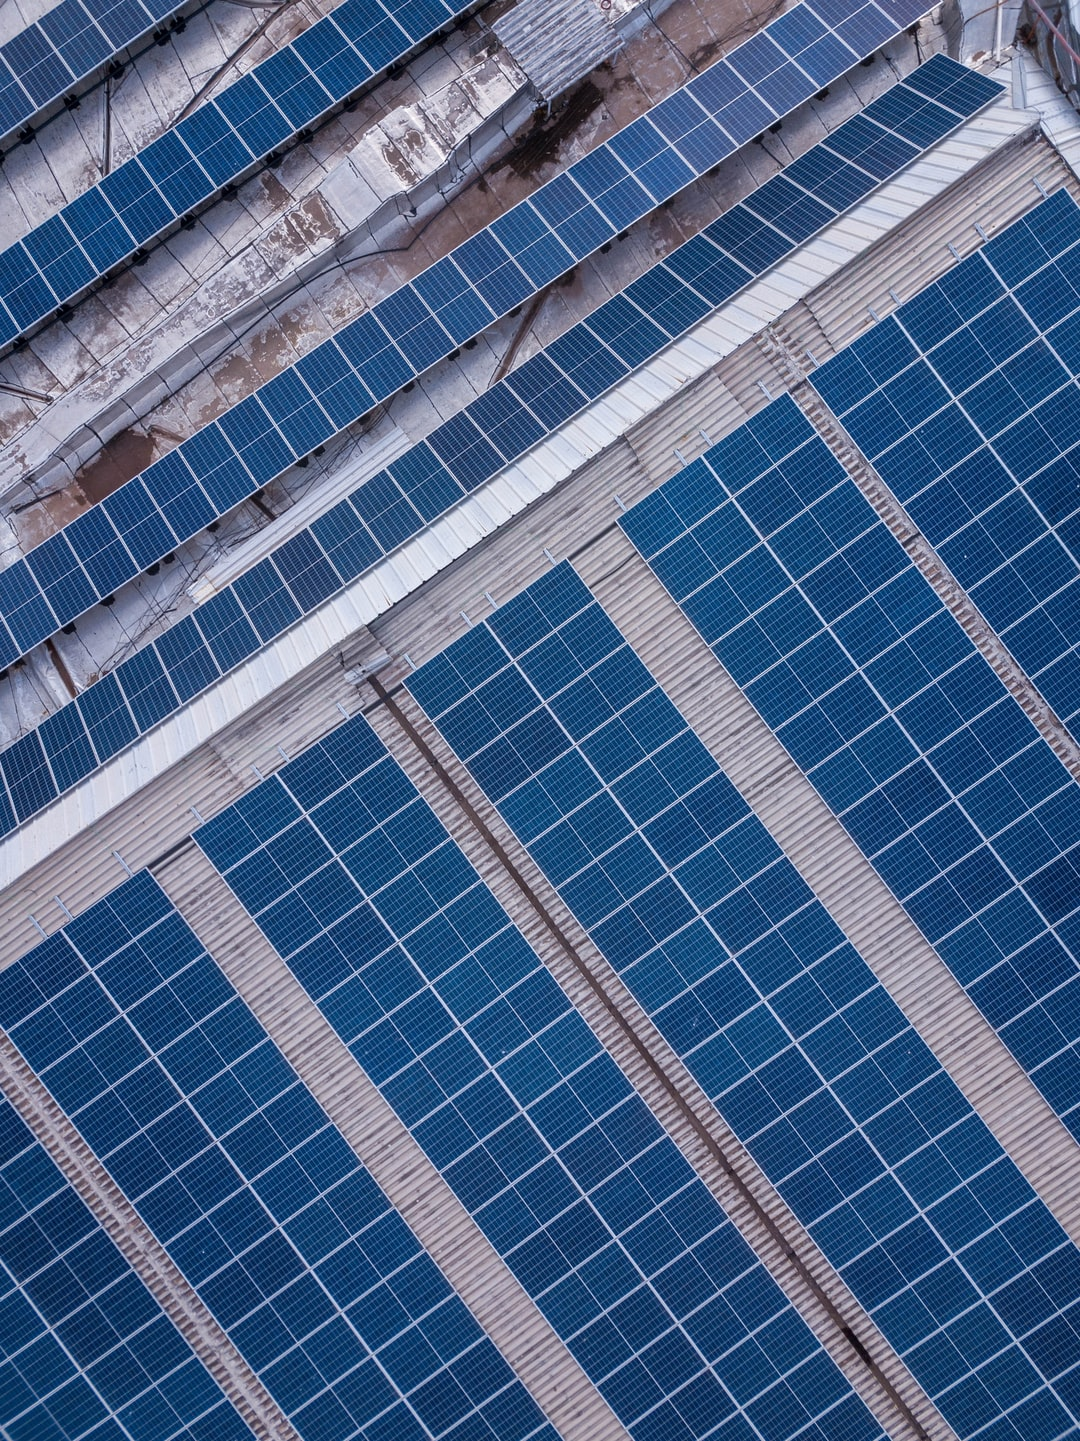 Solar Panels Pros and Cons: Are They Worth it For Your Home?